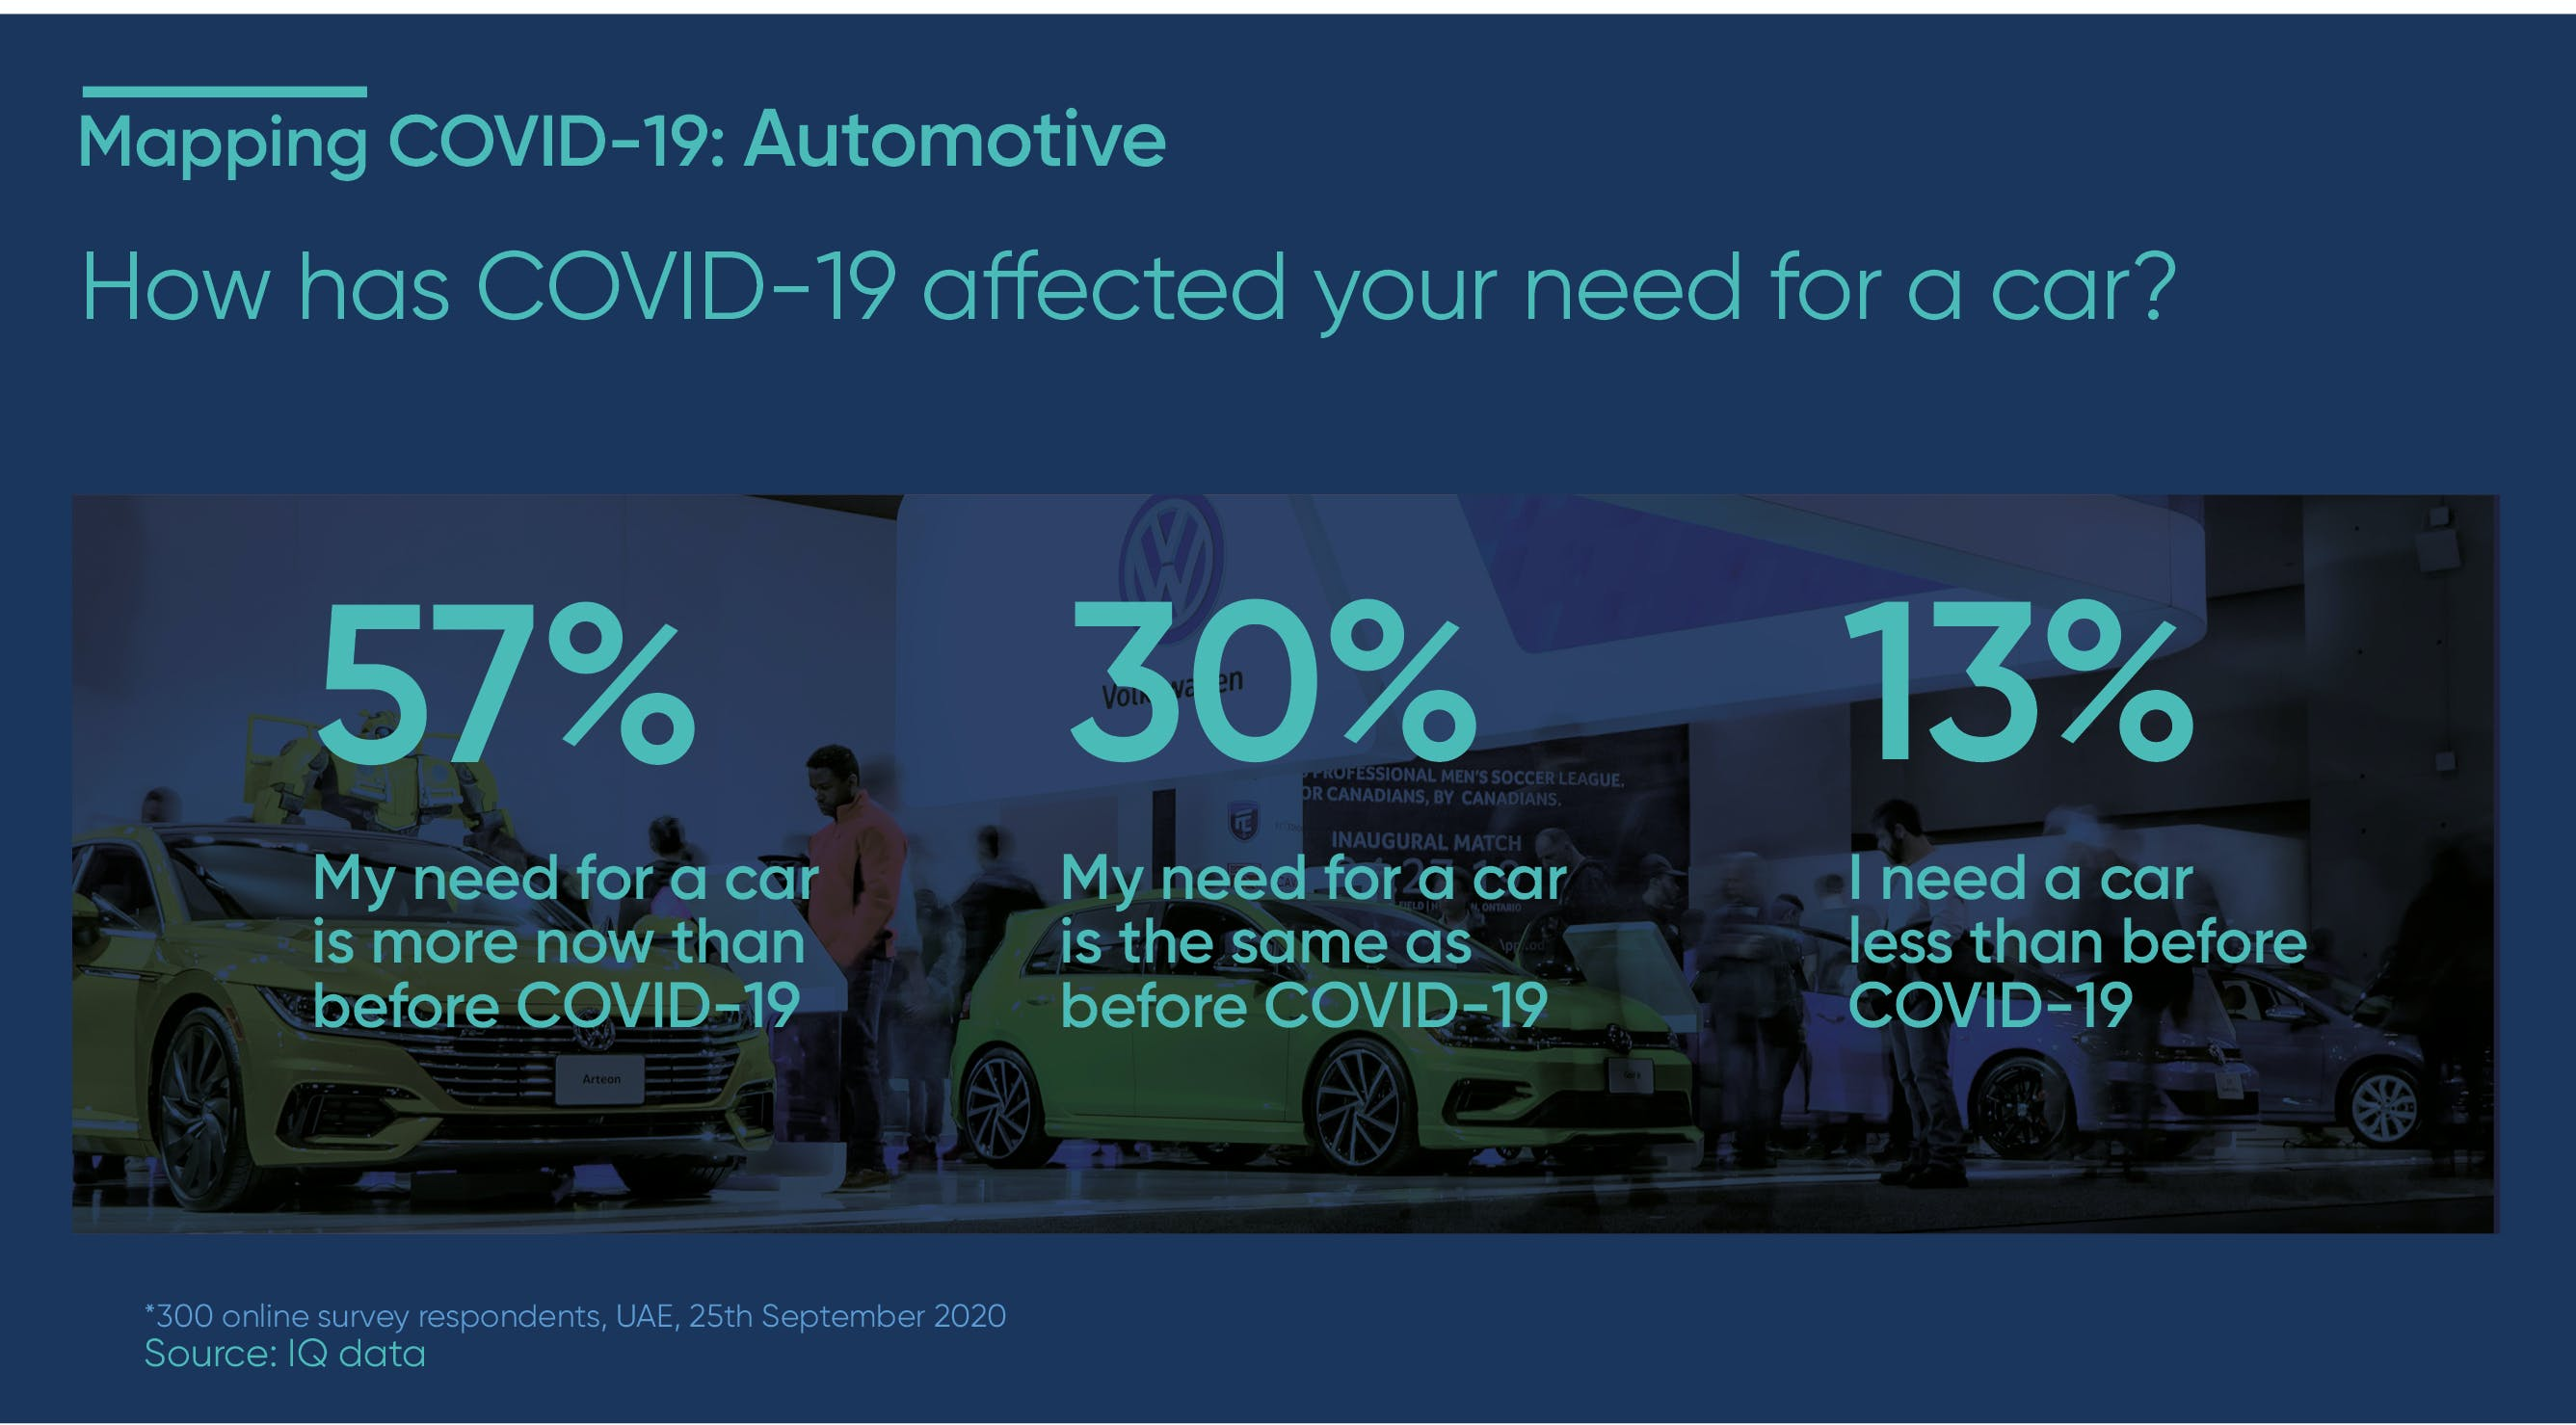 How has COVID-19 affected your need for a car?